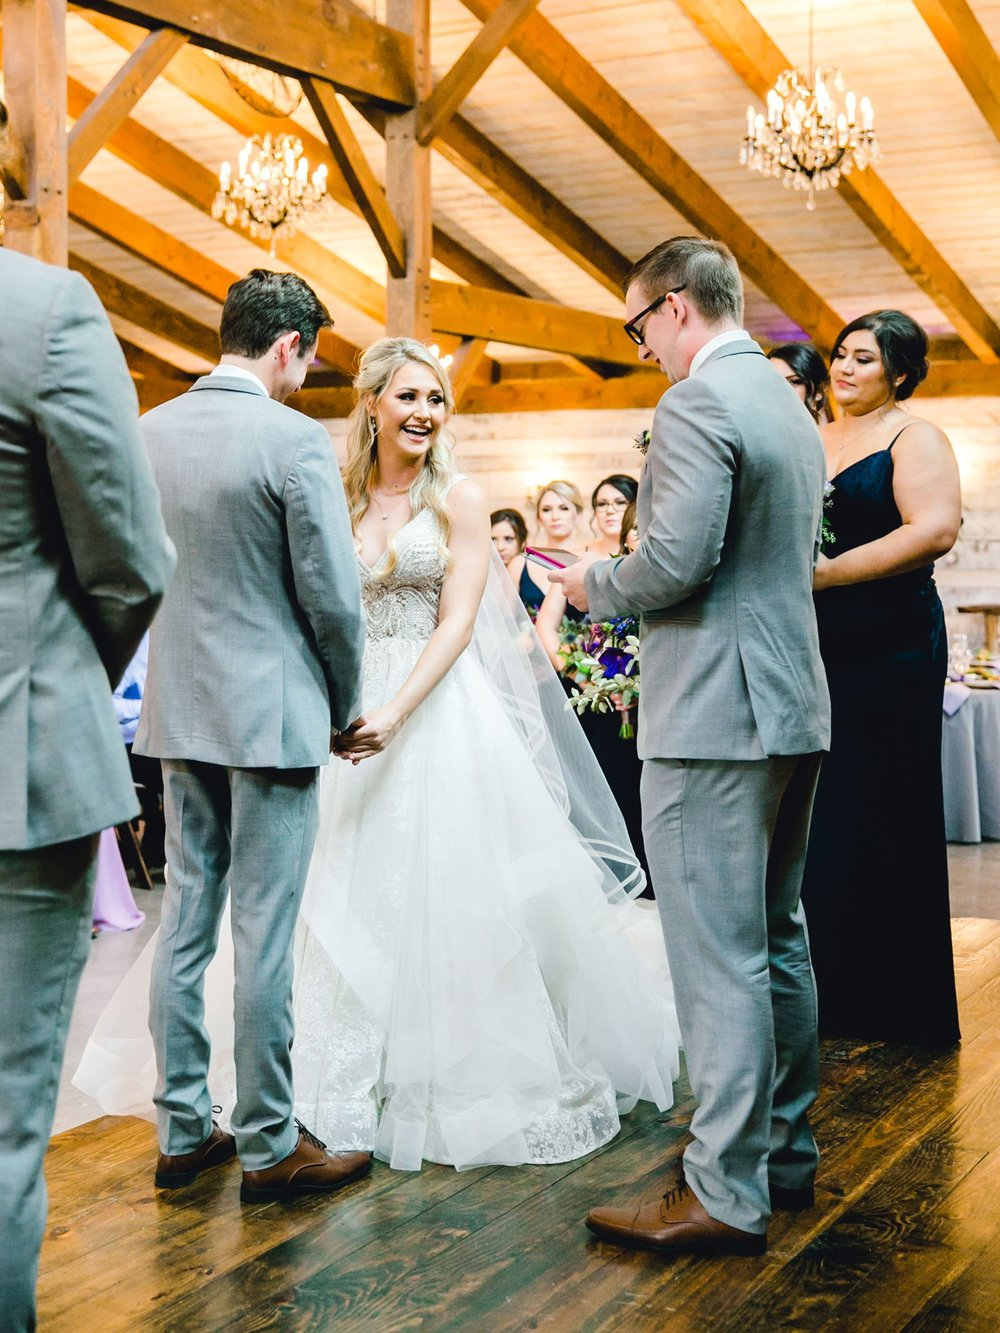 KAITLYN_AND_ZACHARY_HUNT_ALLEEJ_LUBBOCK_WEDDING_PHOTOGRAPHER_EBERLEY_BROOKS_EVENTS_0108.jpg